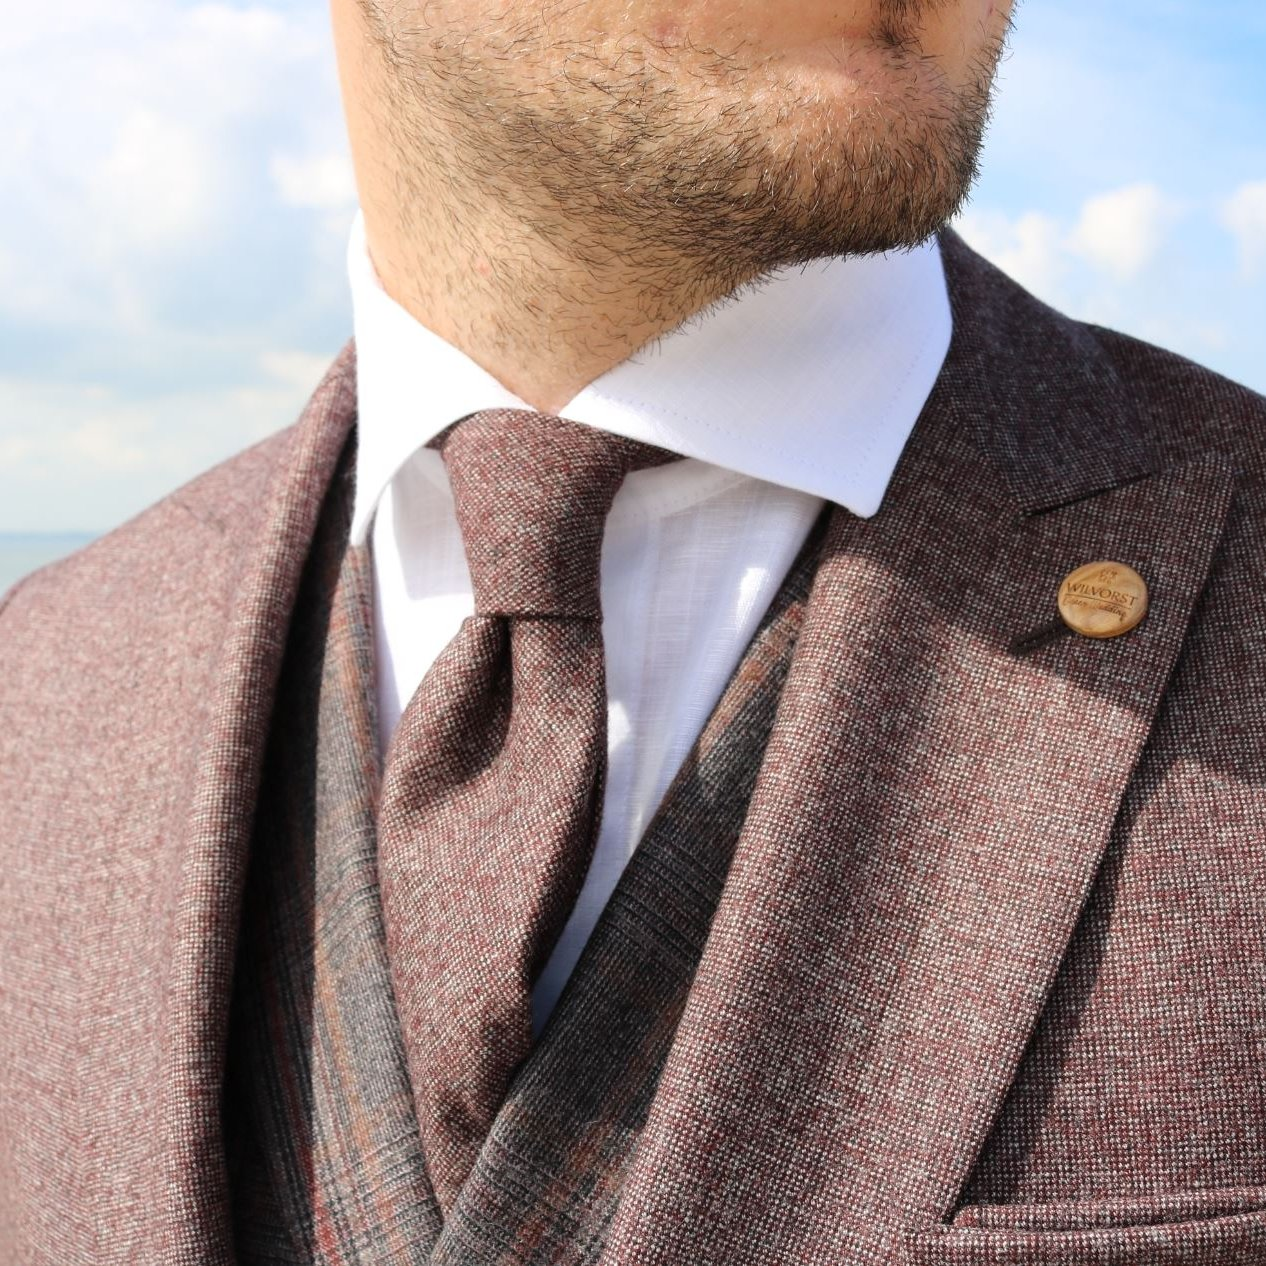 Elegant ties matching the sustainable wedding suits